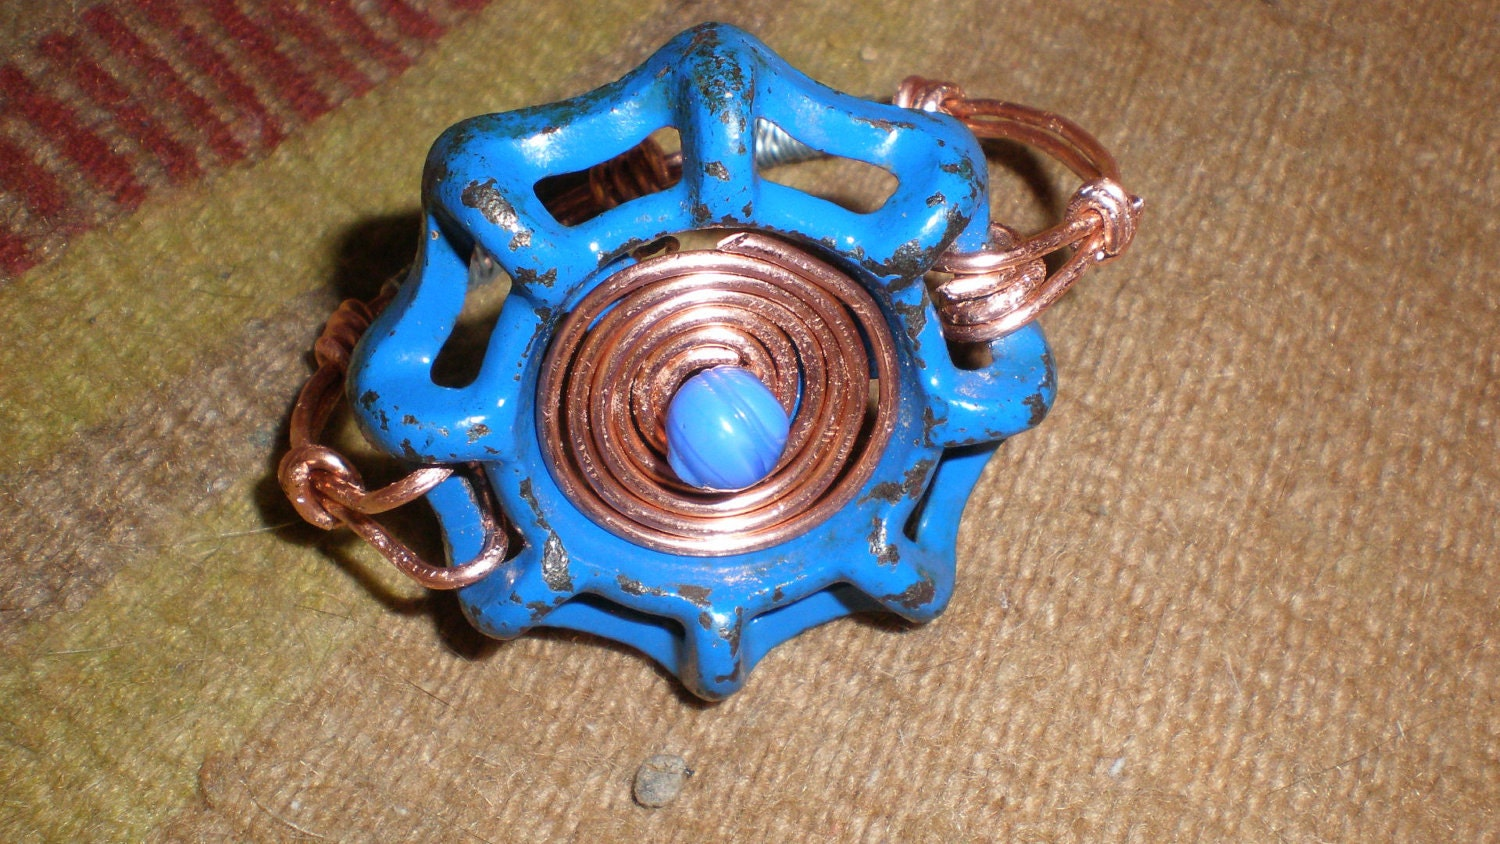 Metal Bracelet Valve Handle Industrial Punk / Steampunk Distressed/Spigot Handle-Upcycled